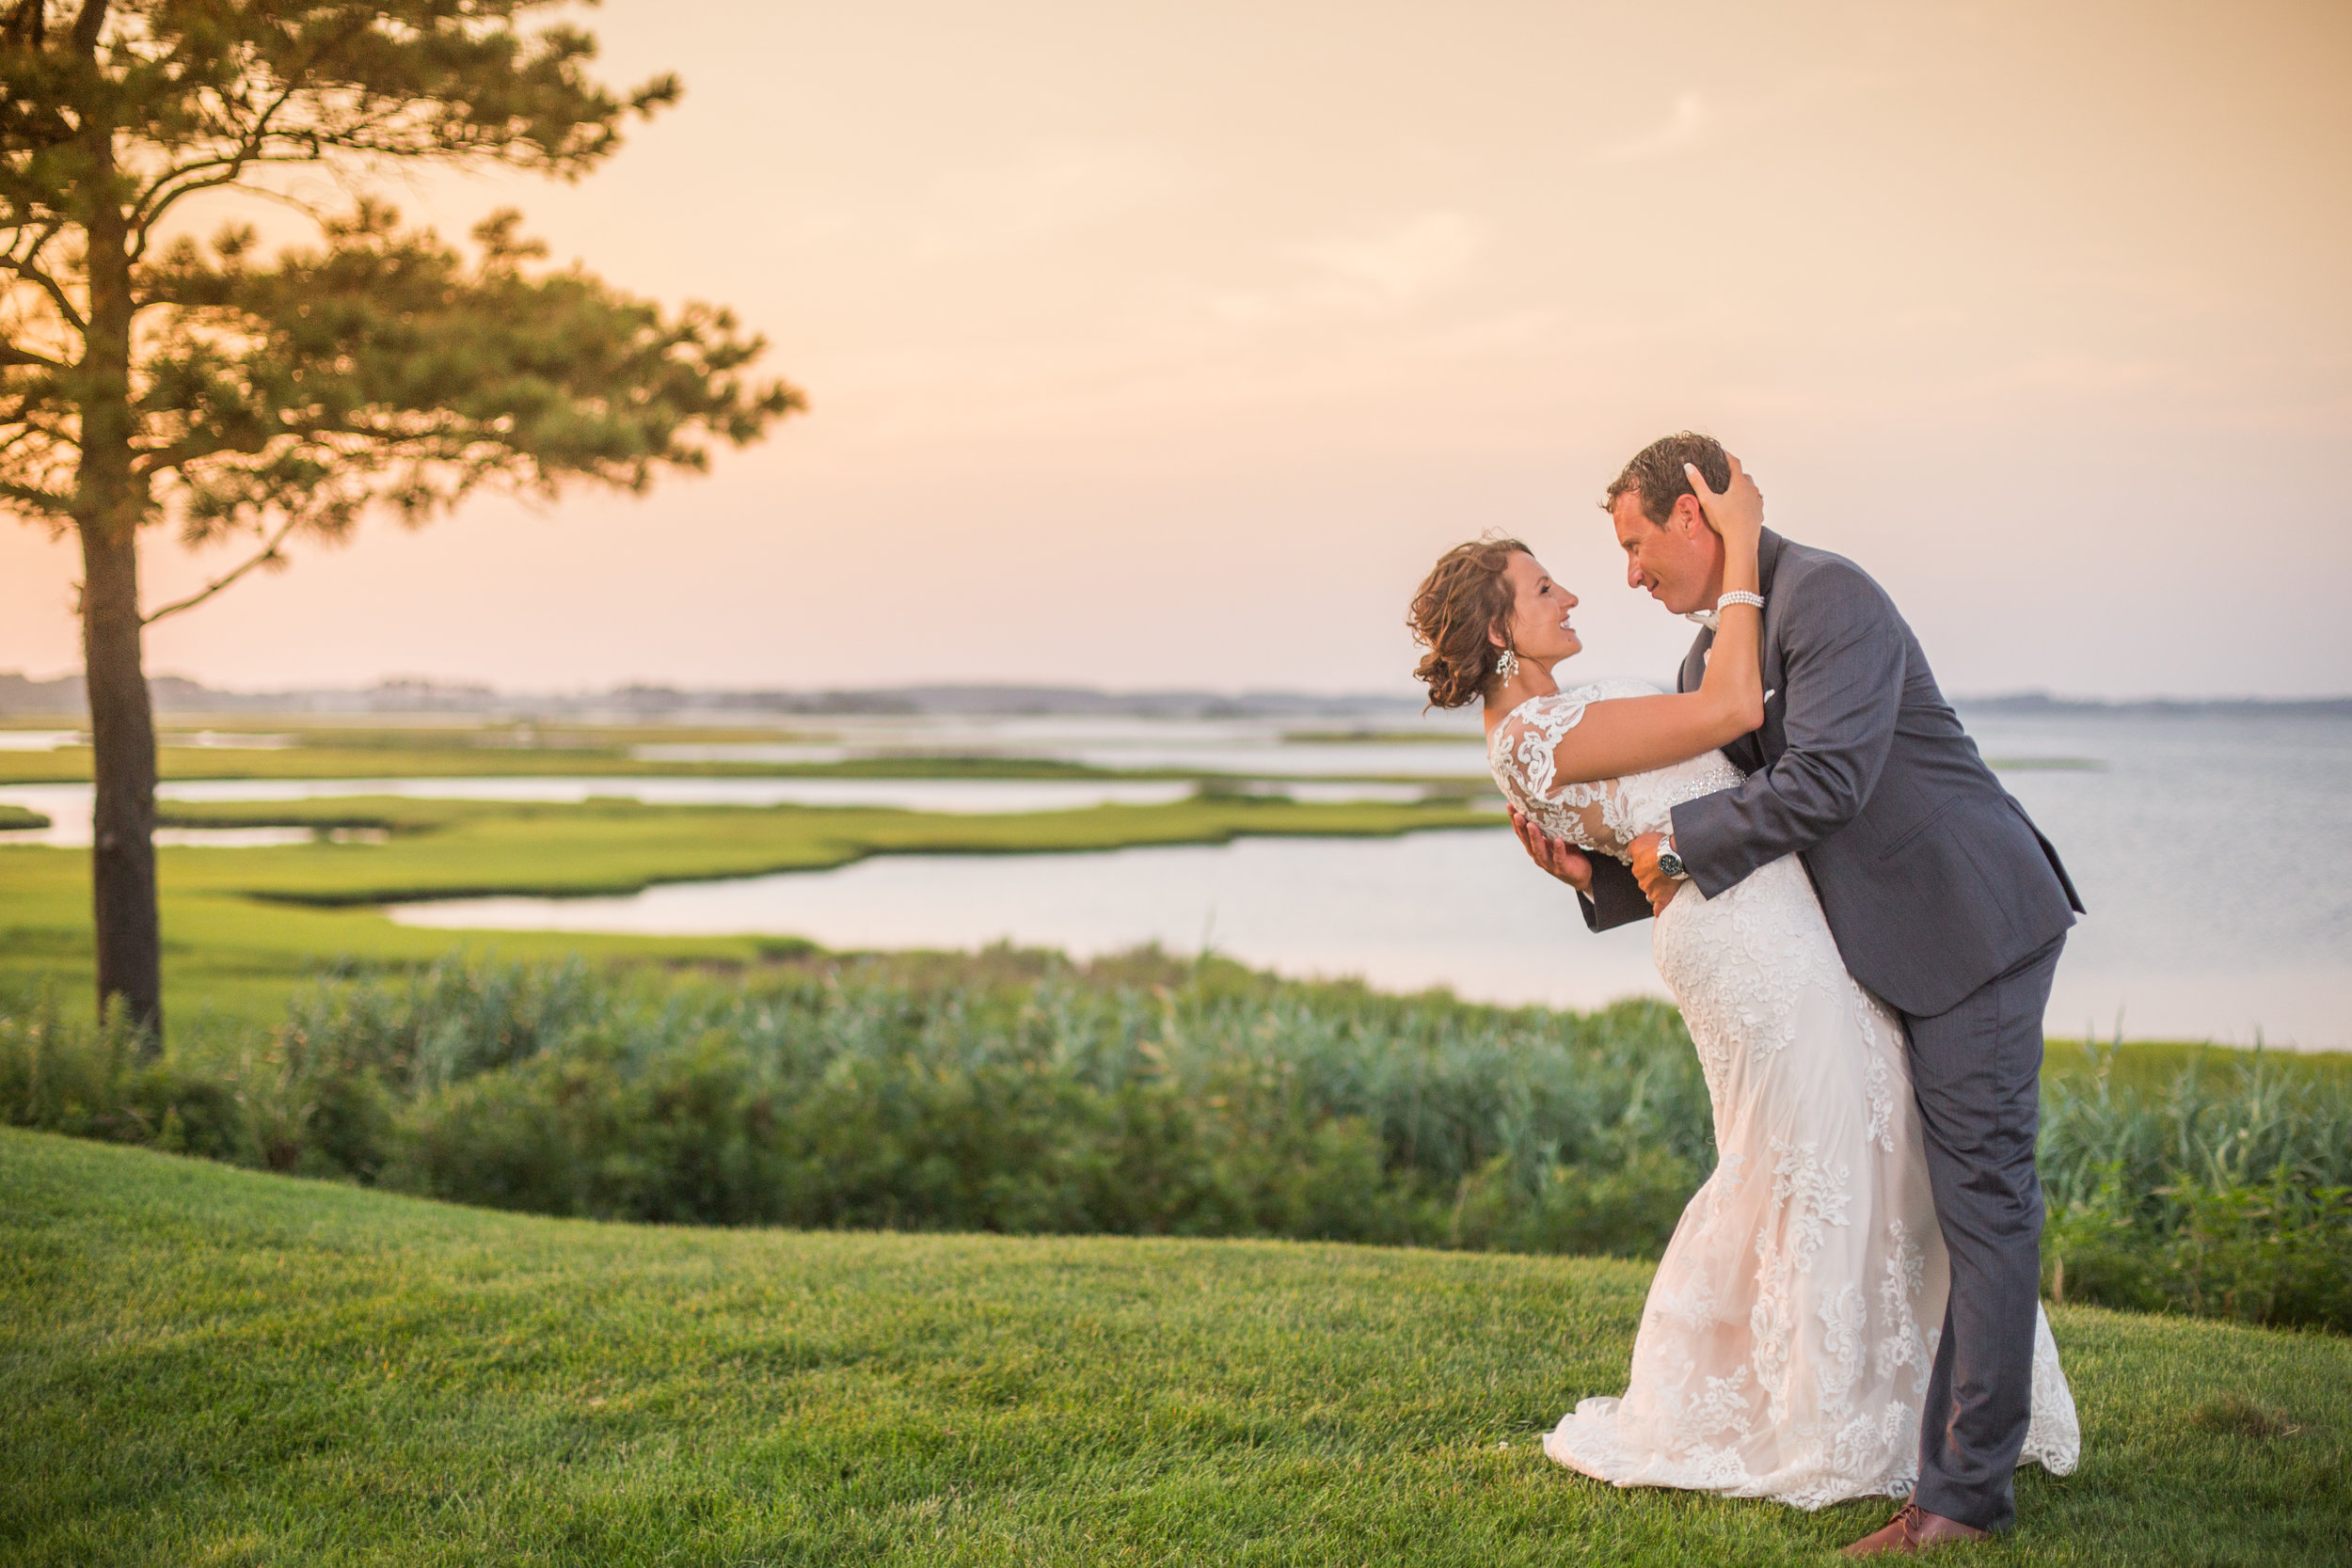 Beautiful evening at Lighthouse Sound wedding with panoramic views of Ocean City. The sunsets here are some of the most spectacular around.